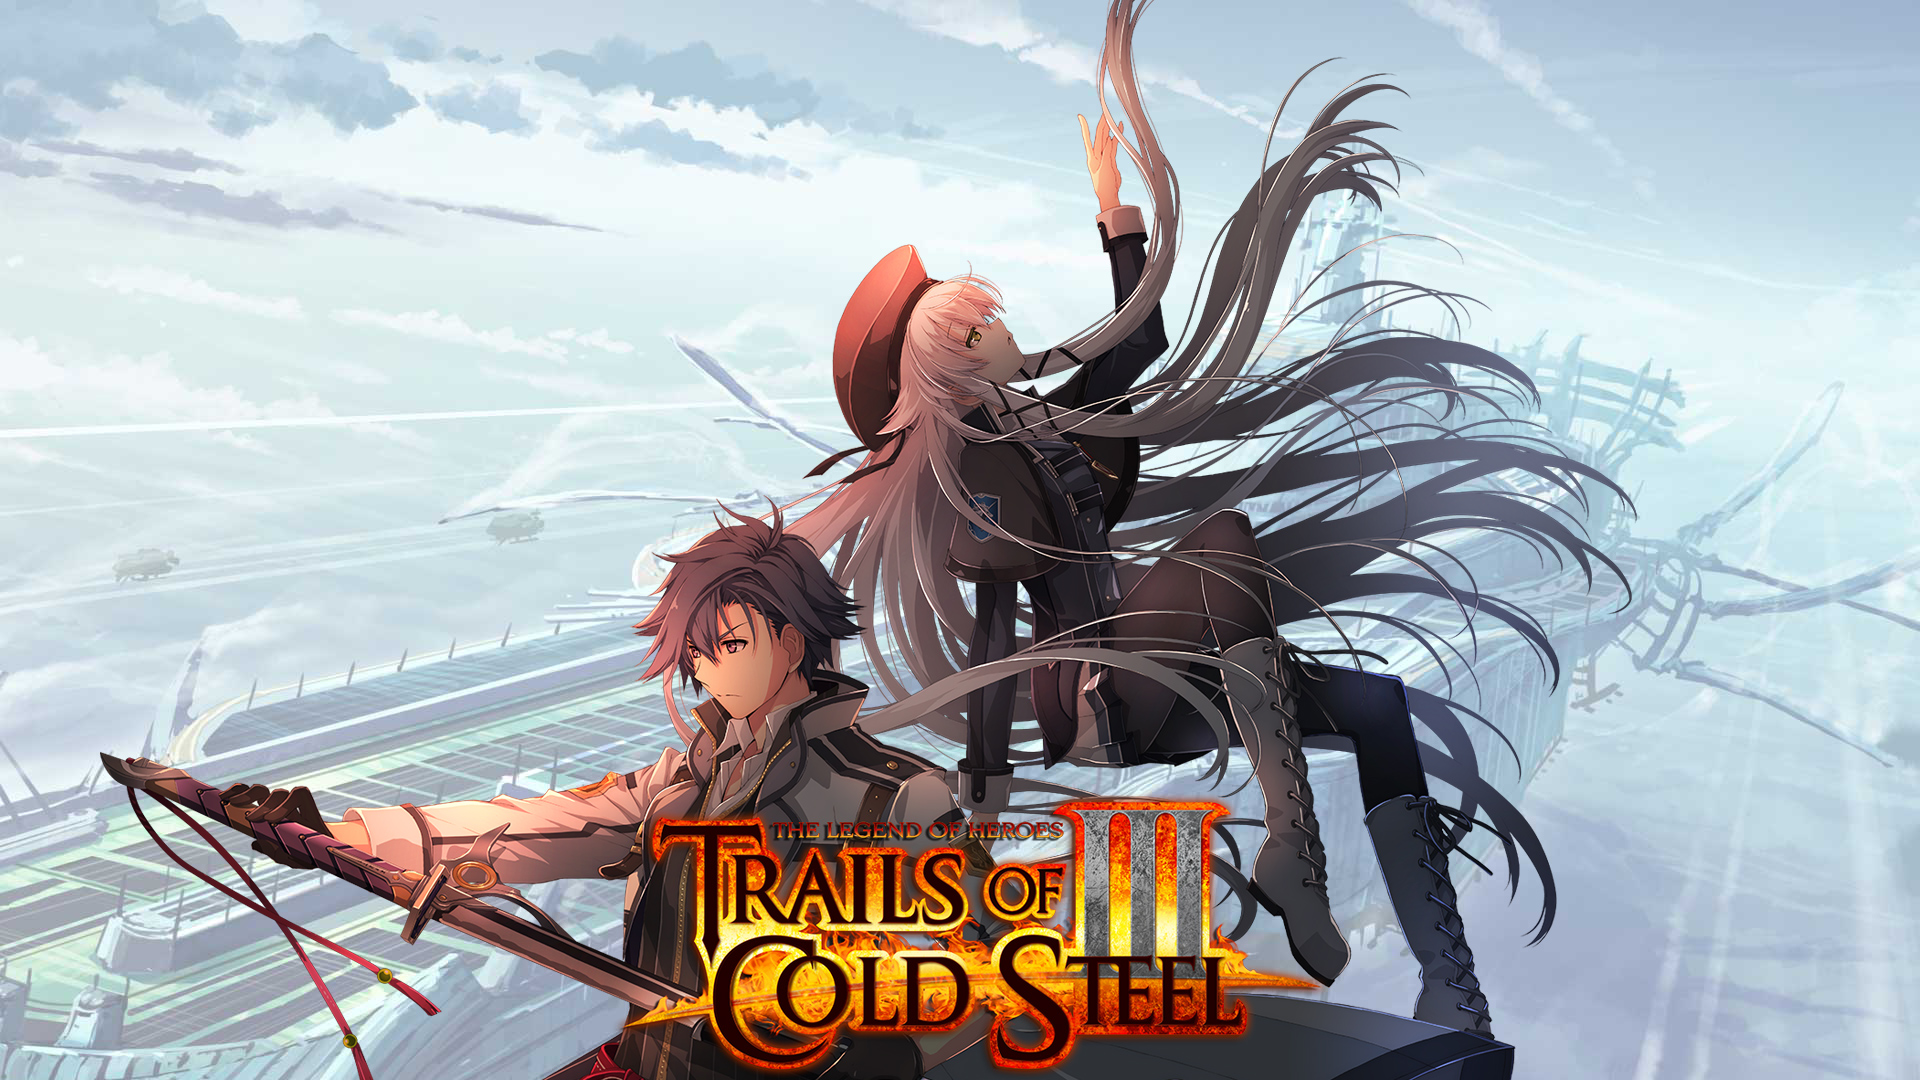 trails-of-cold-steel-3-featured.jpg